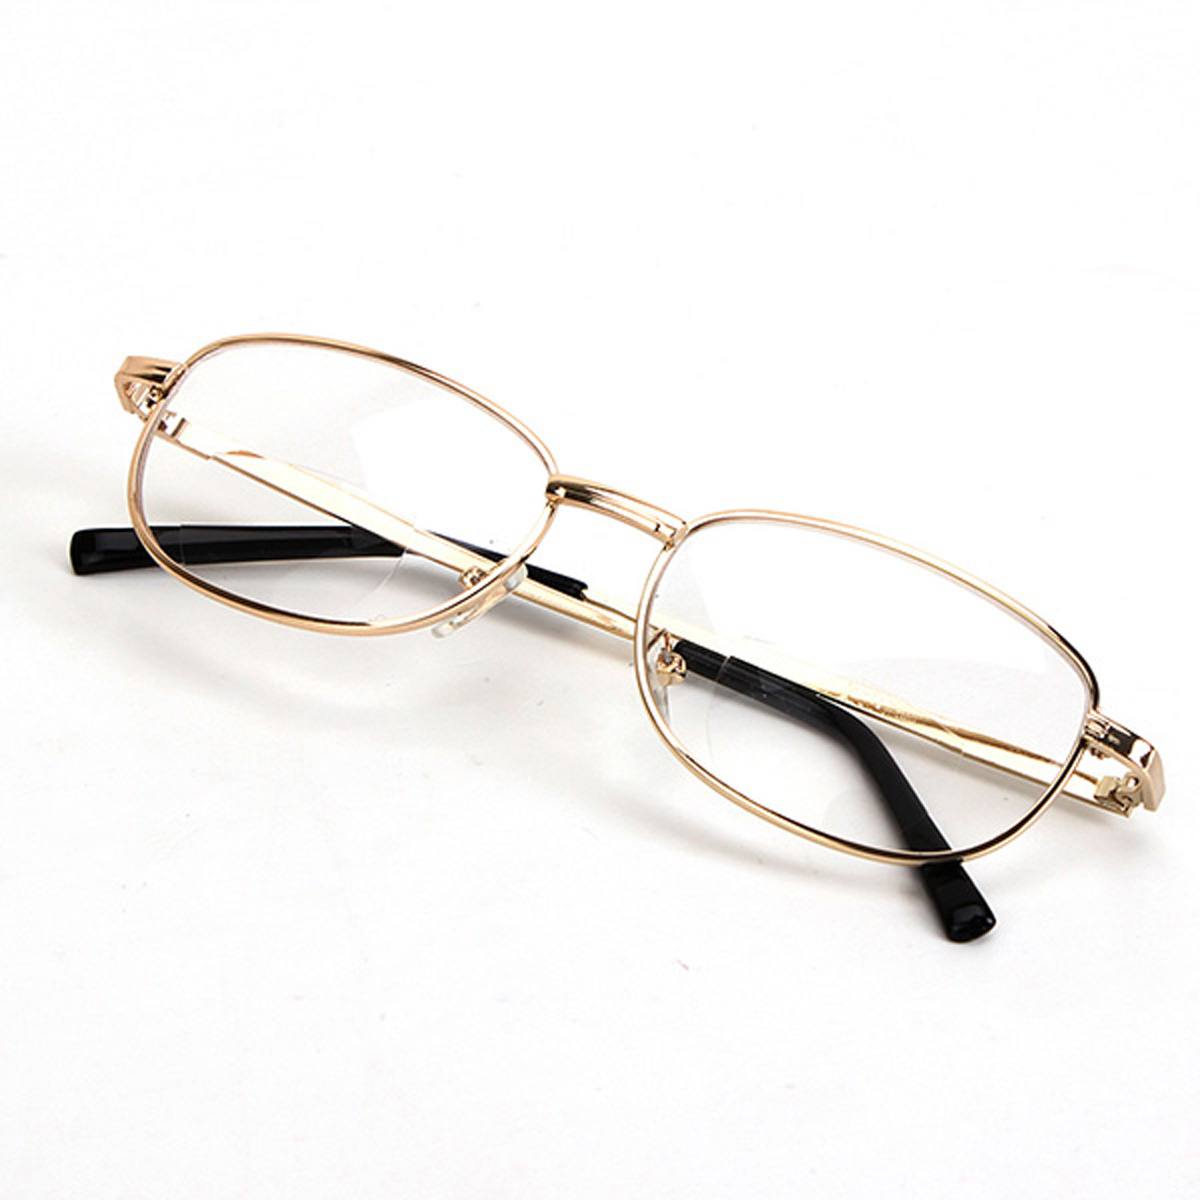 fashion bifocal lens rimmed men 039 s reading